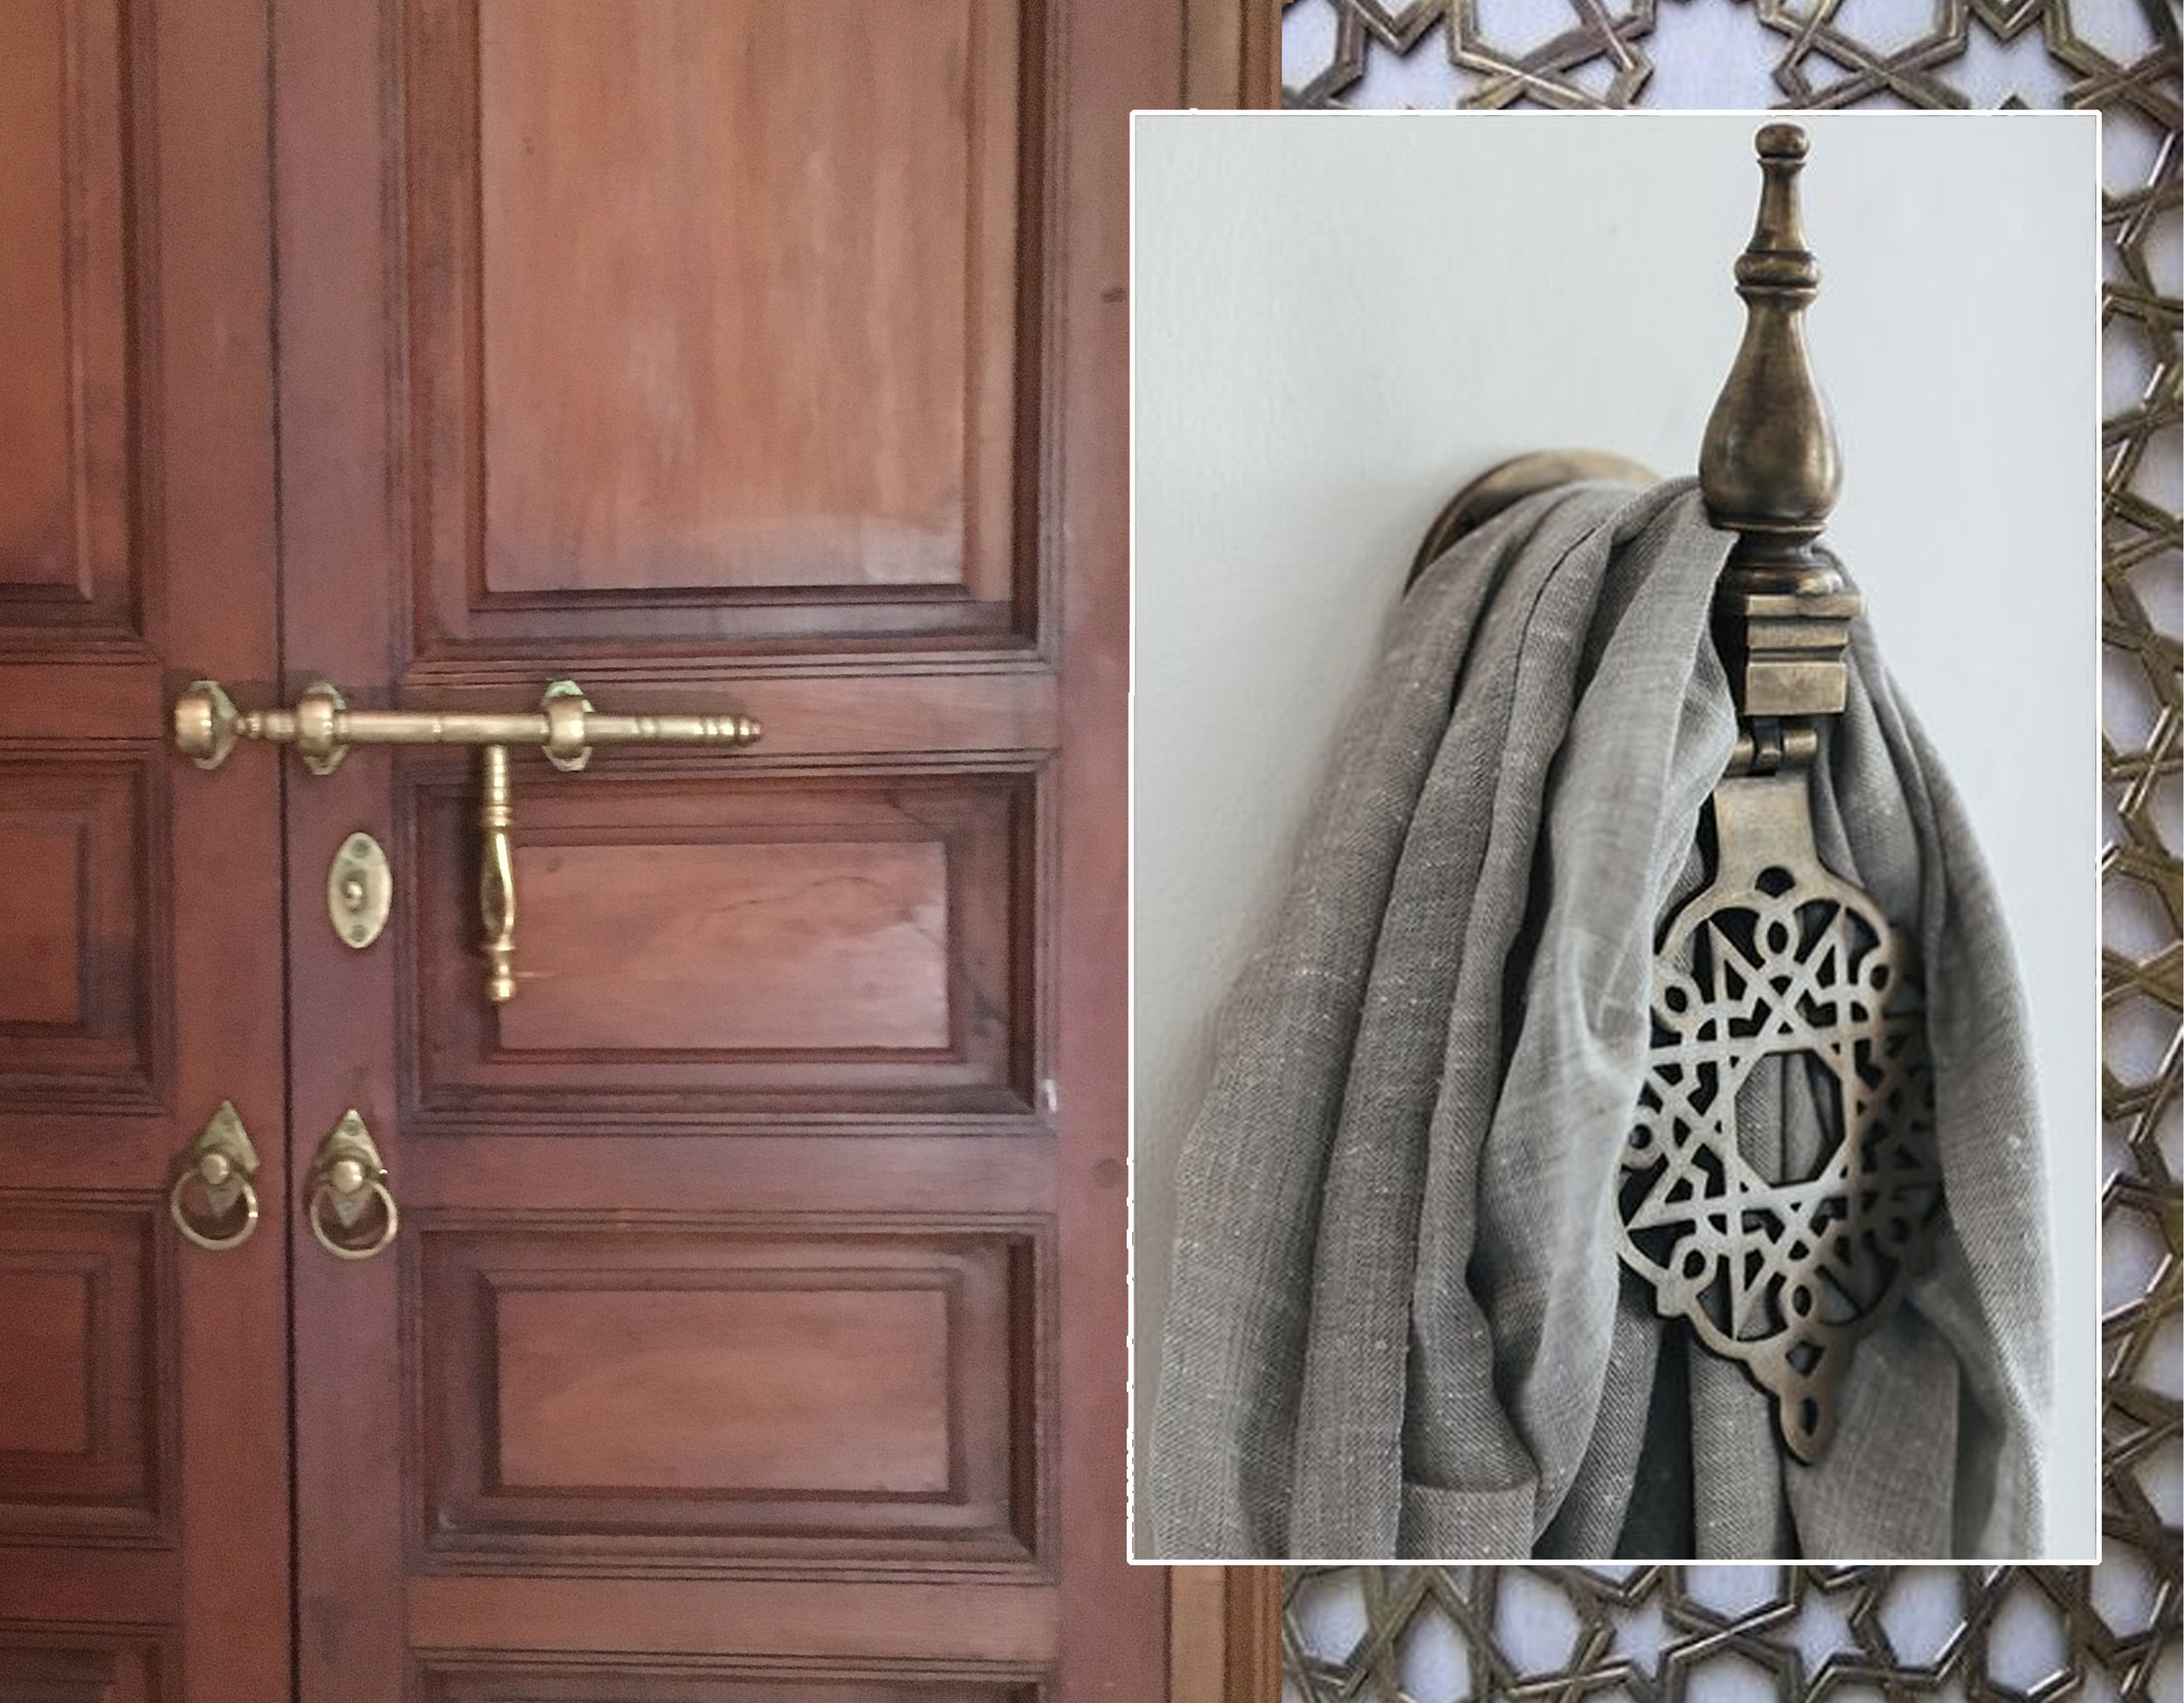 brass hardware  La Villa Nomade  - metal grill  Tazi Designs  - door knob as towel support similar at  Manyarahome